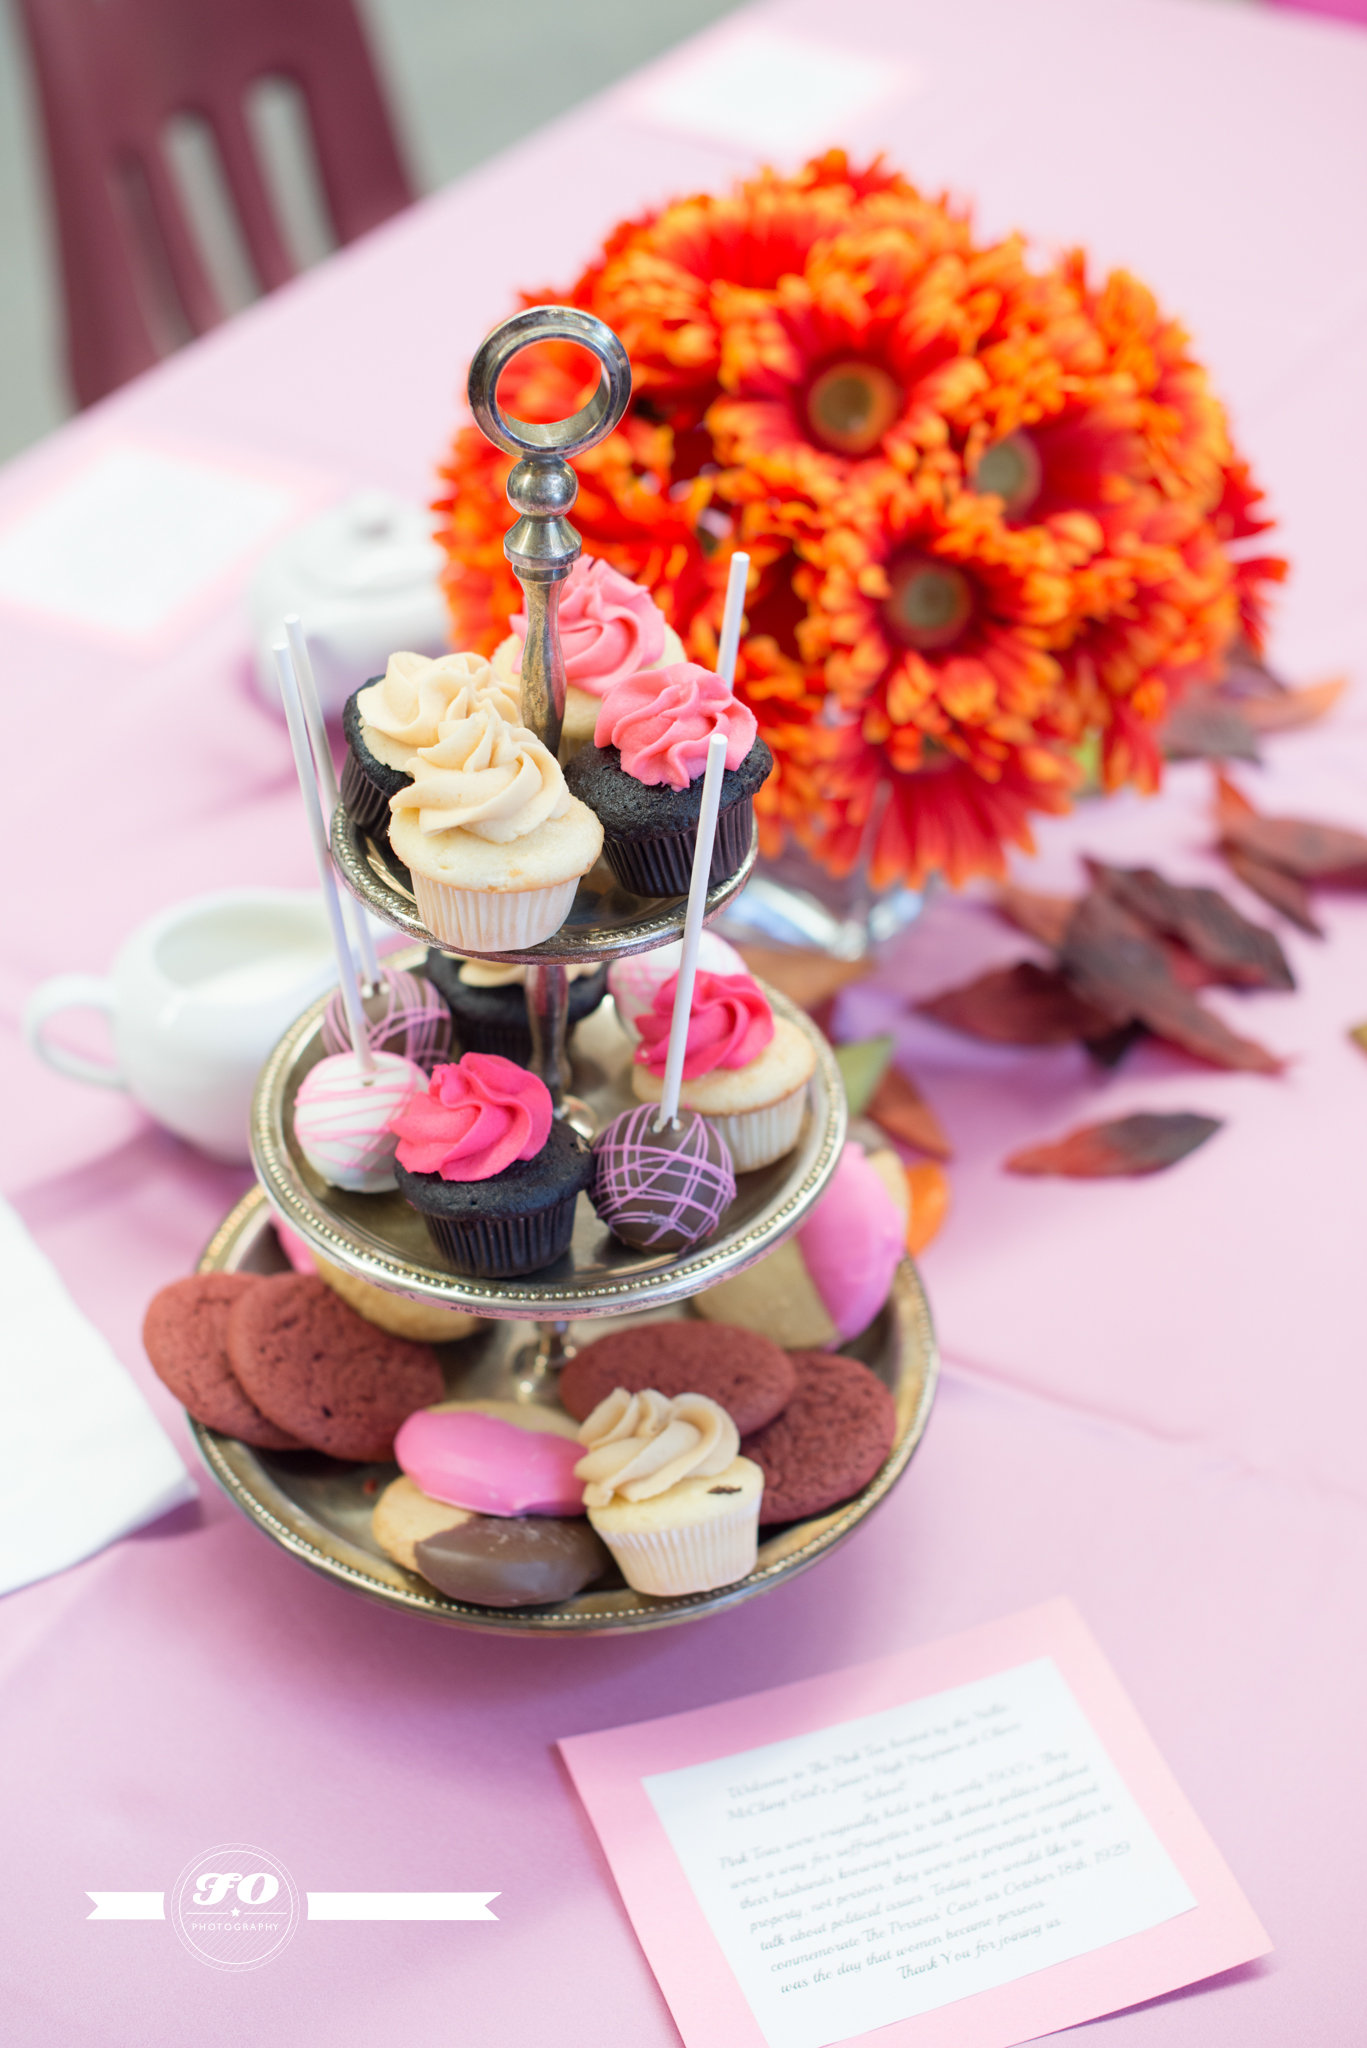 Pink Tea 2015 Image by FO Photography-15.jpg